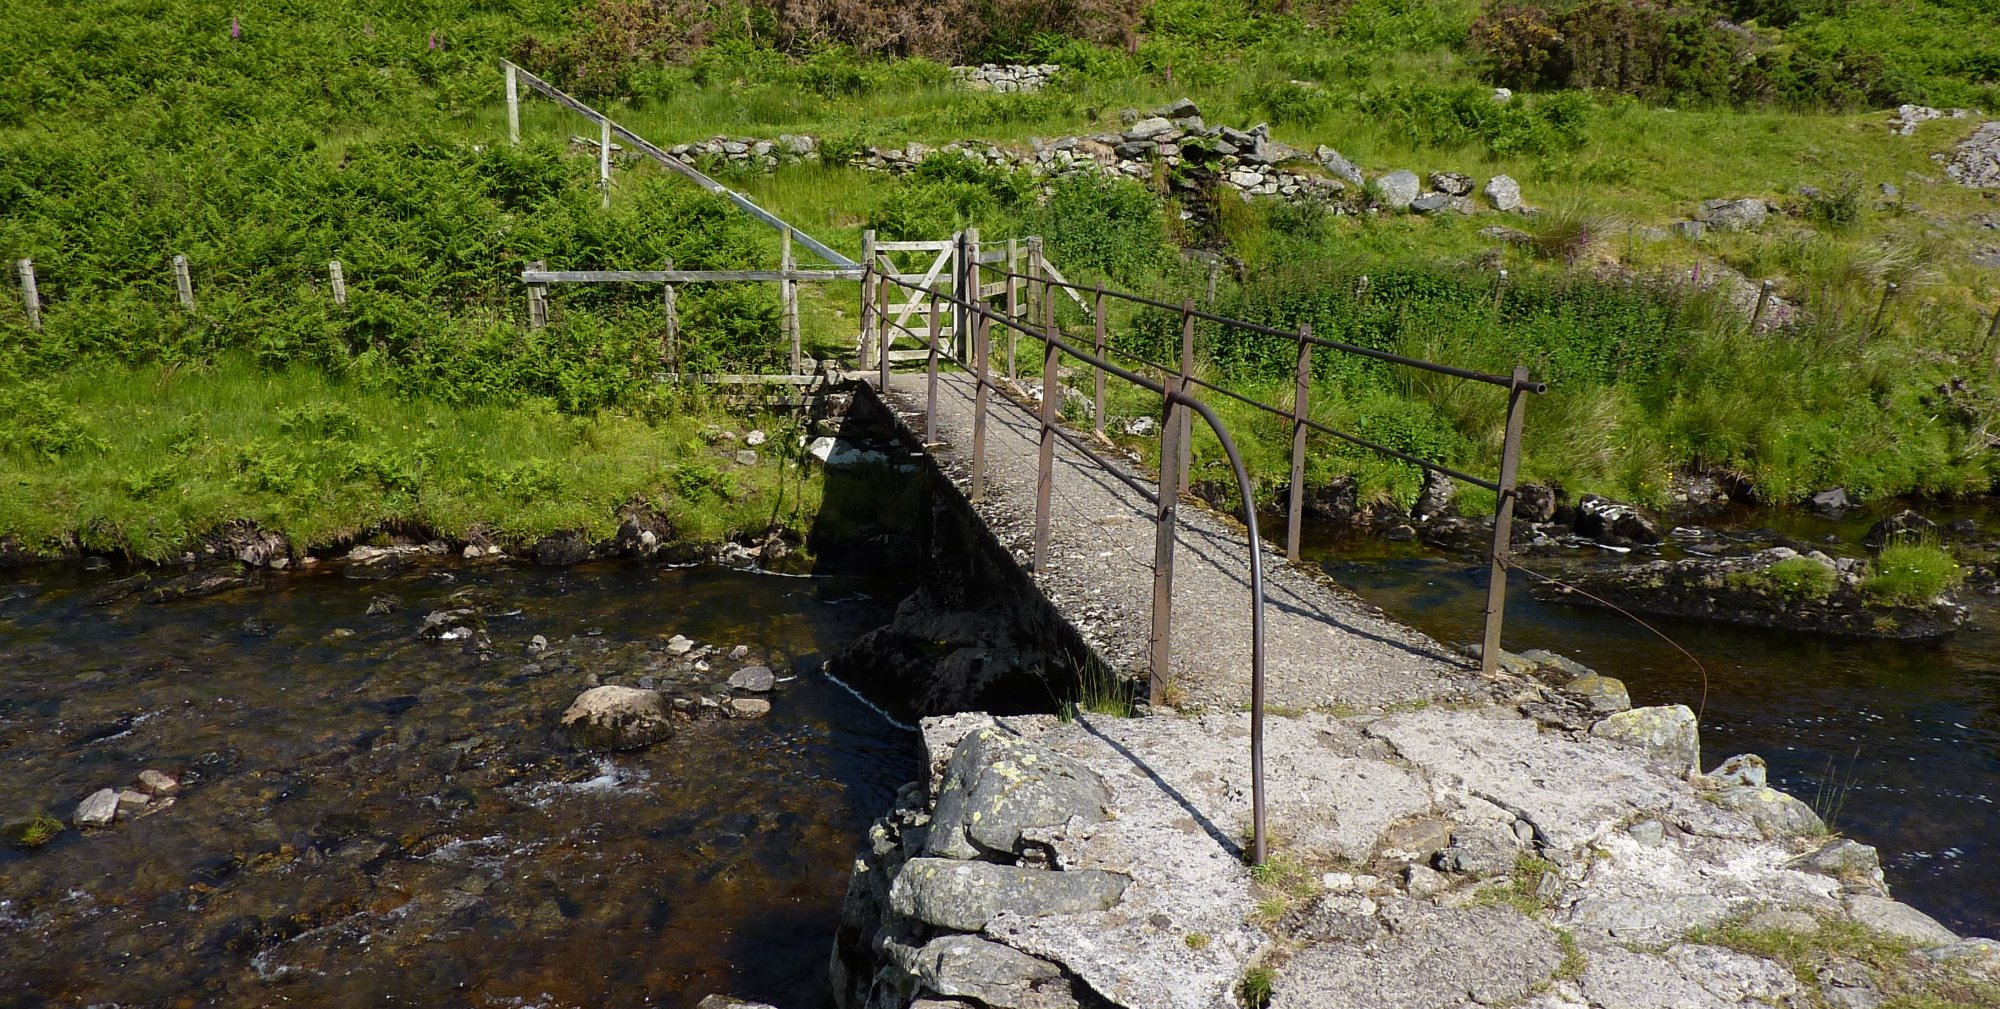 Across the bridge to reach the road into Swindale